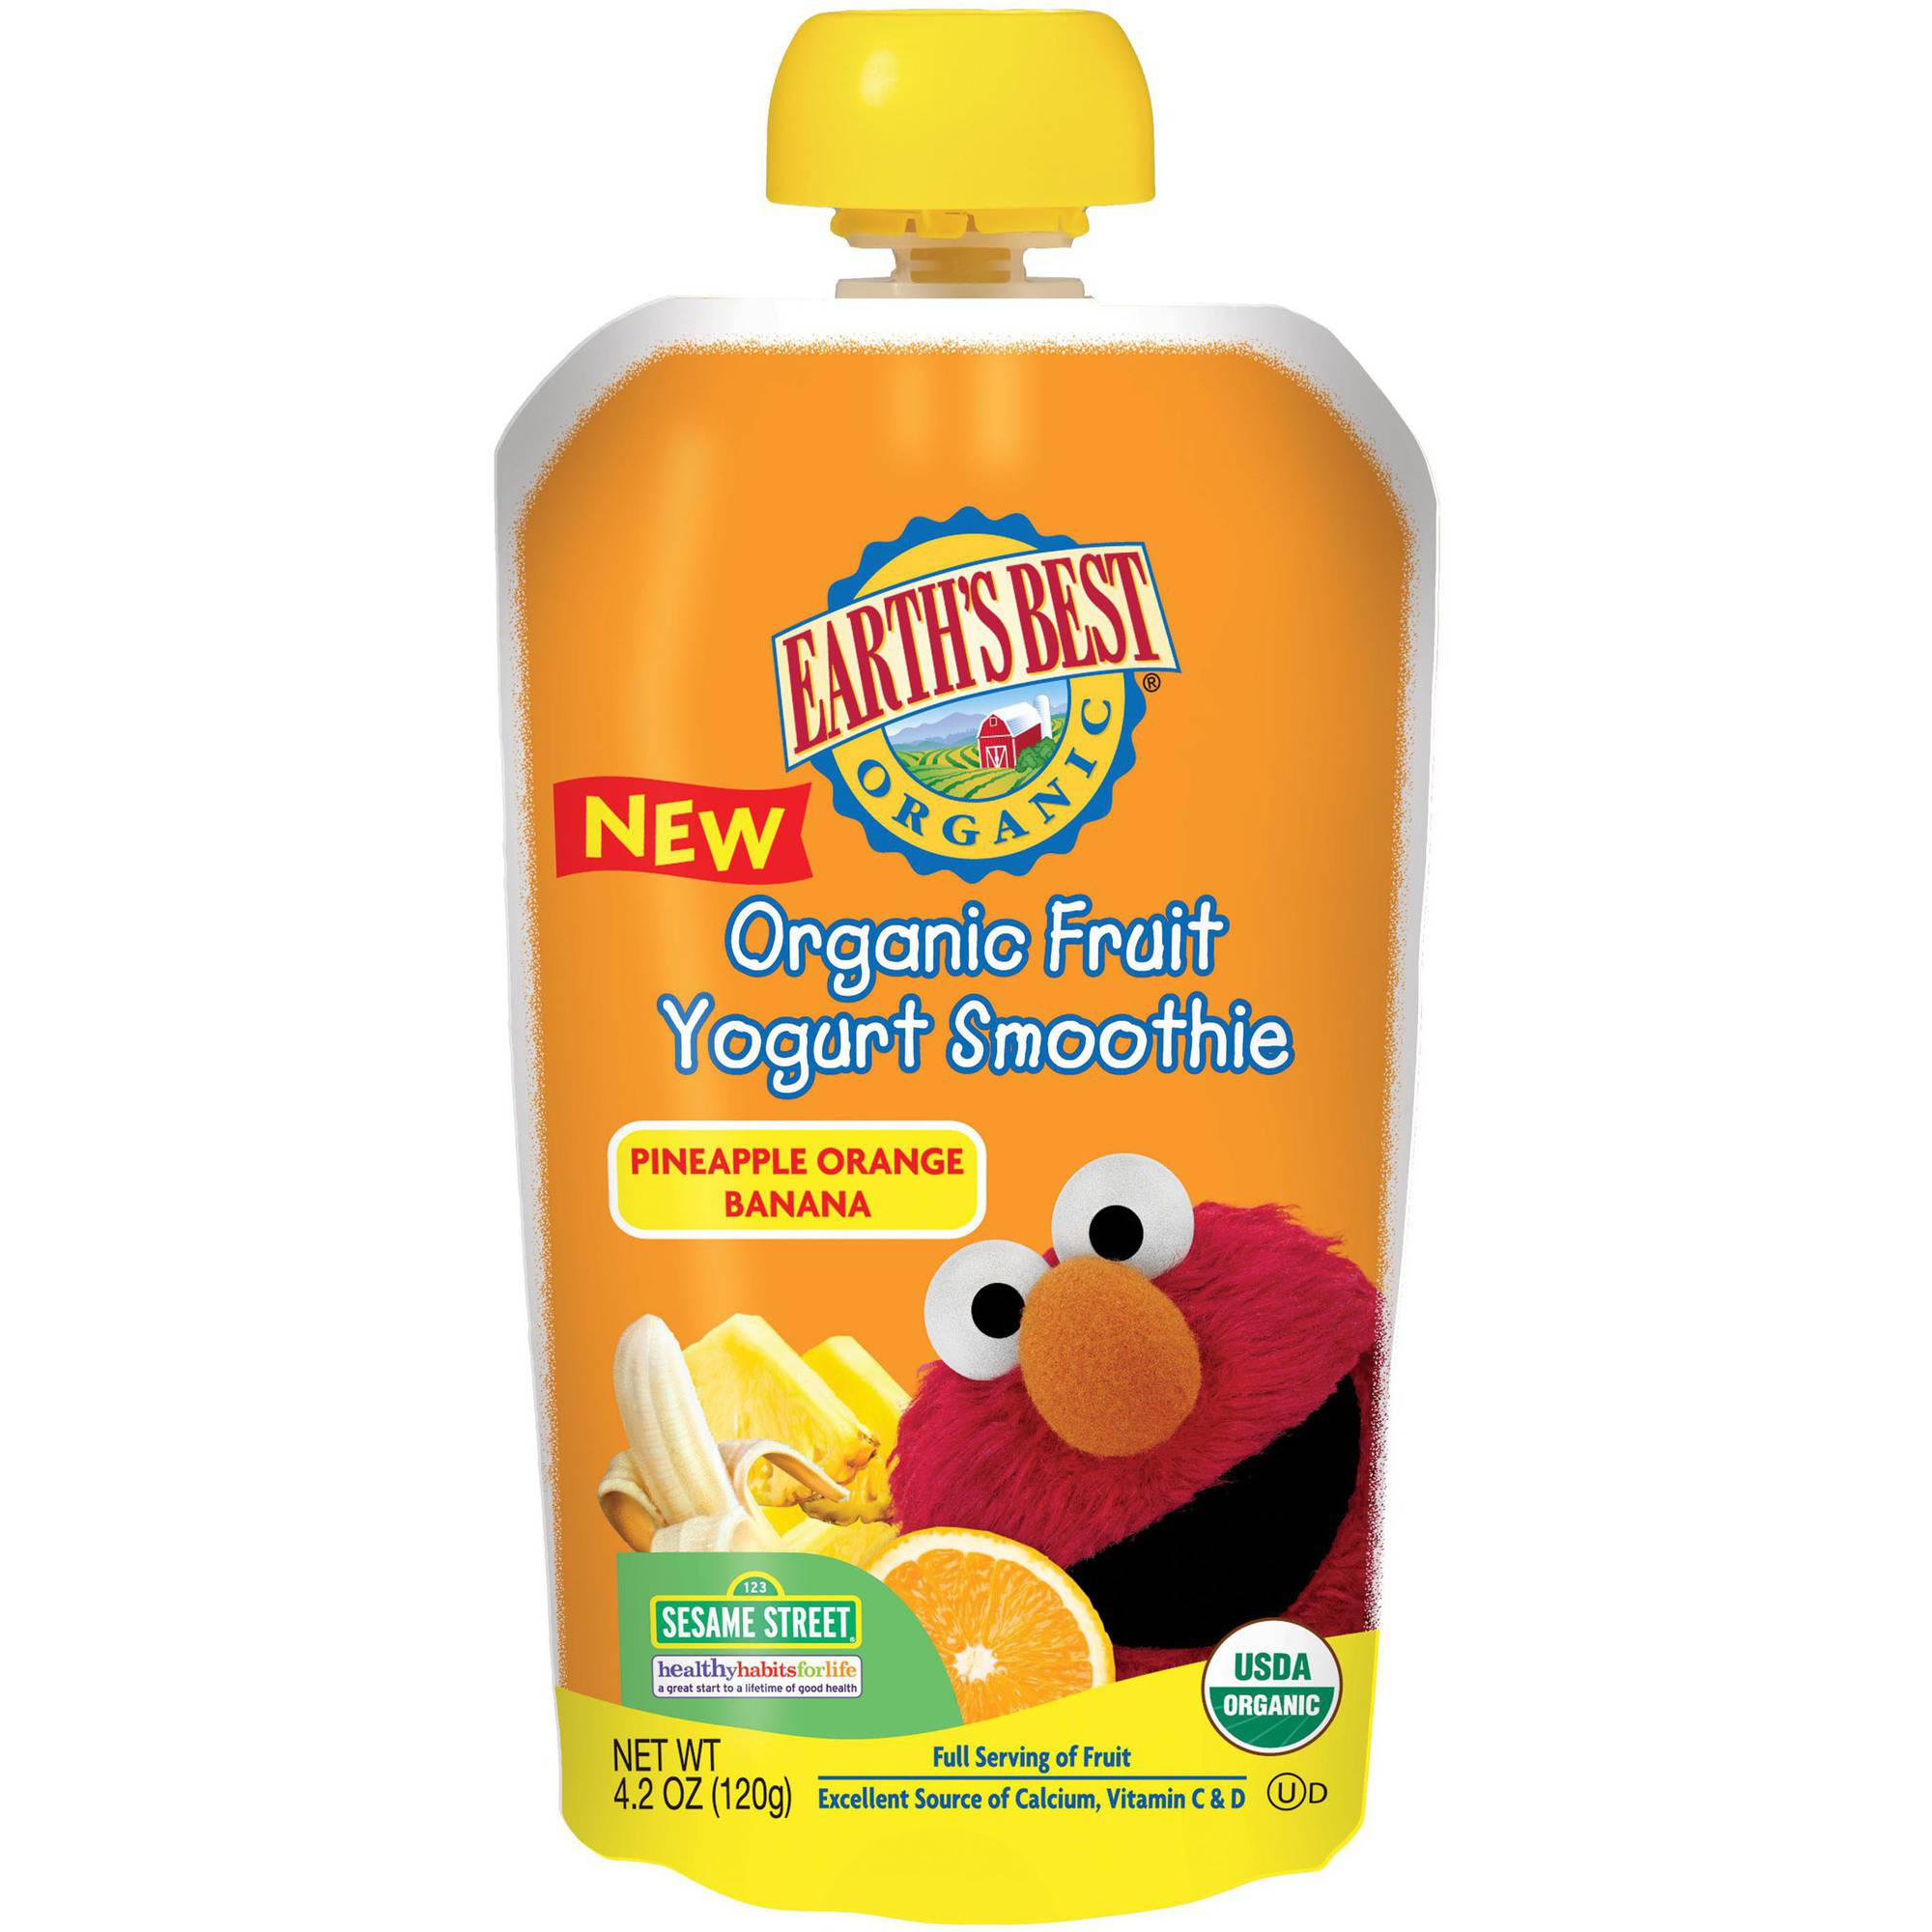 Earth's Best Organic Sesame Street Pineapple Orange Banana Fruit Yogurt Smoothie, 4.2 oz, (Pack of 6)